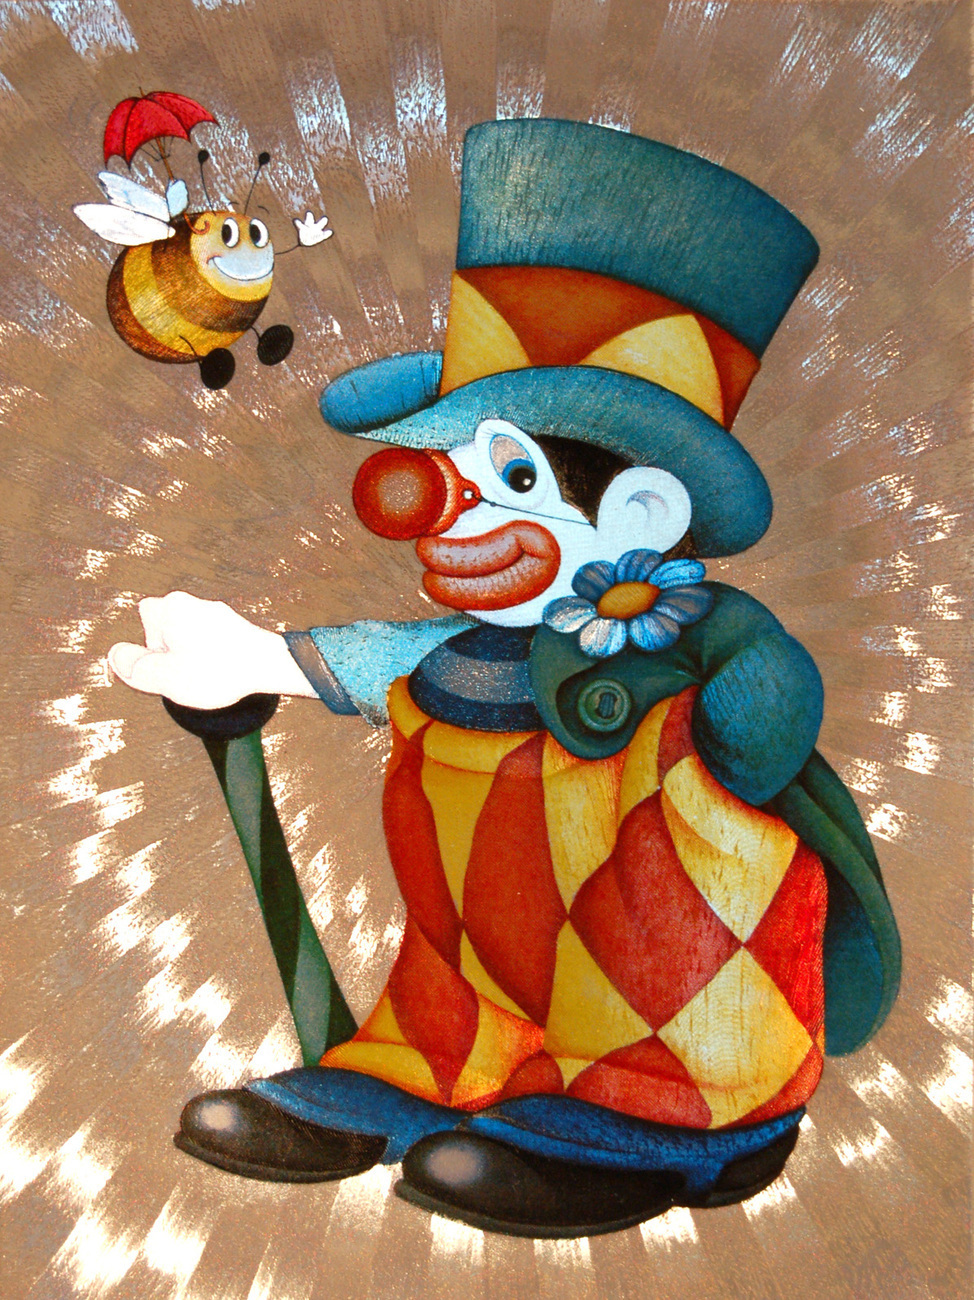 654436 clown with bee